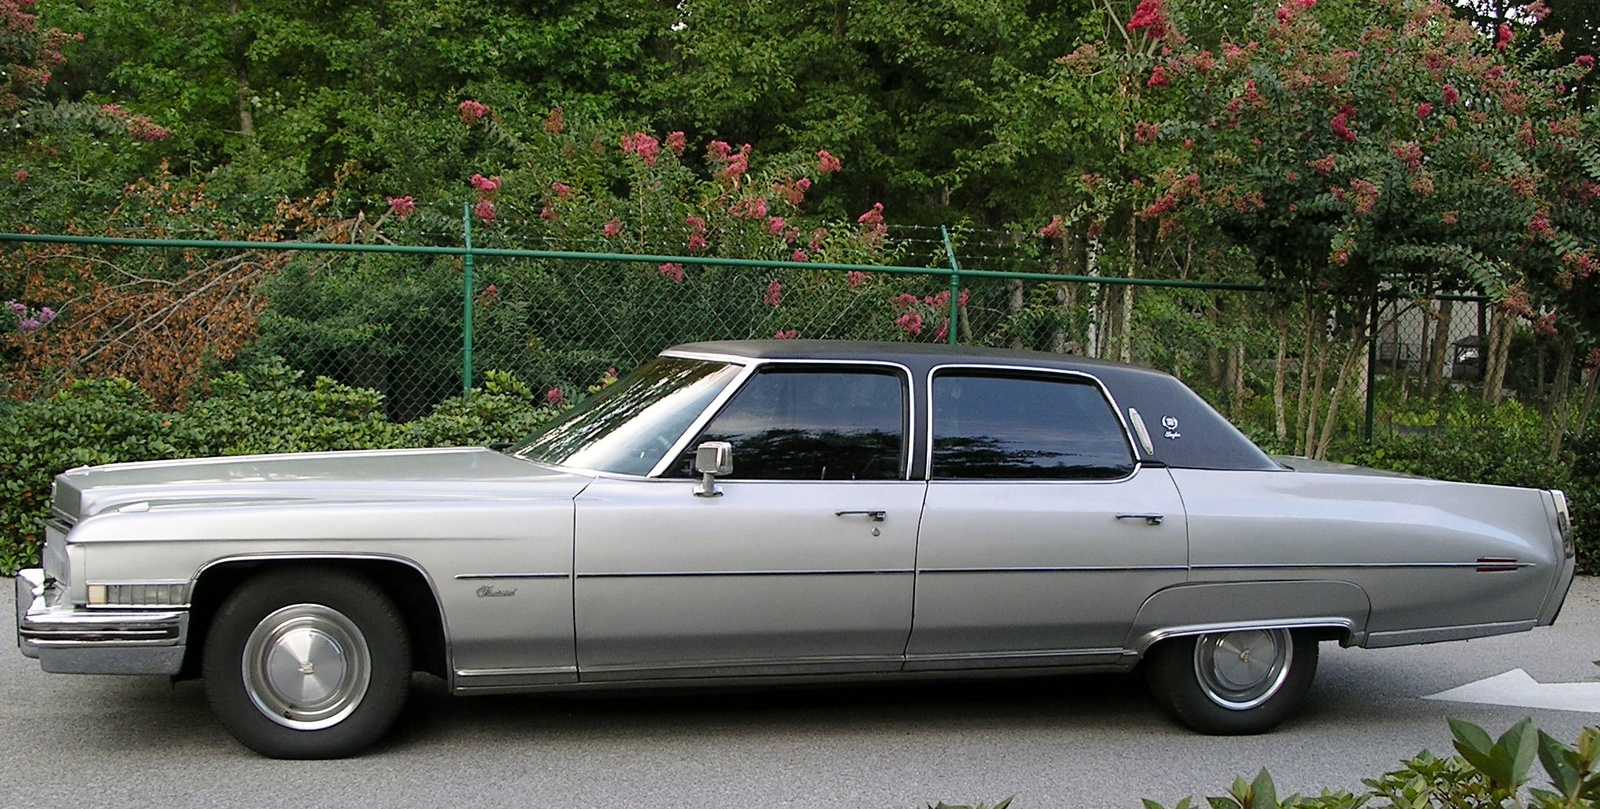 1995 cadillac fleetwood specifications cargurus. Cars Review. Best American Auto & Cars Review